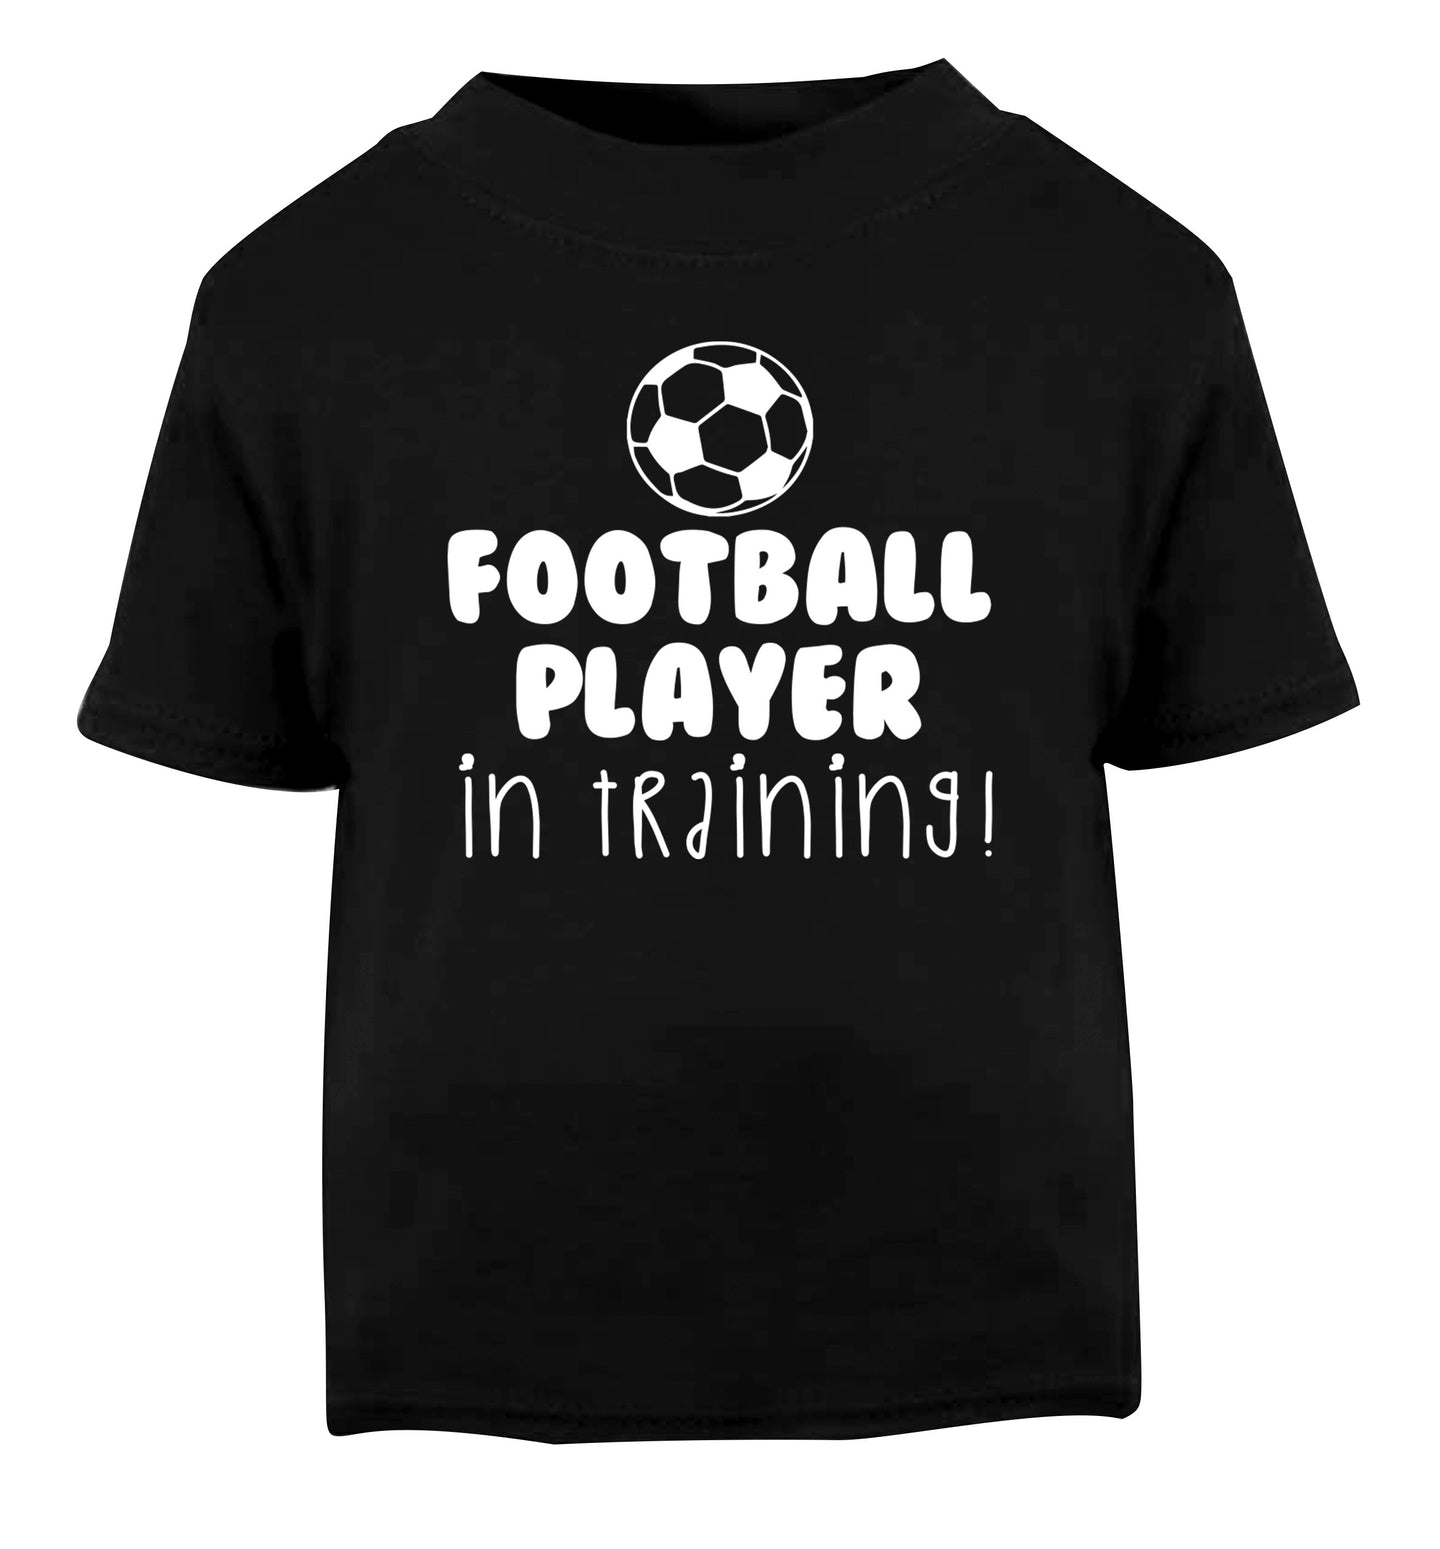 Football player in training Black Baby Toddler Tshirt 2 years